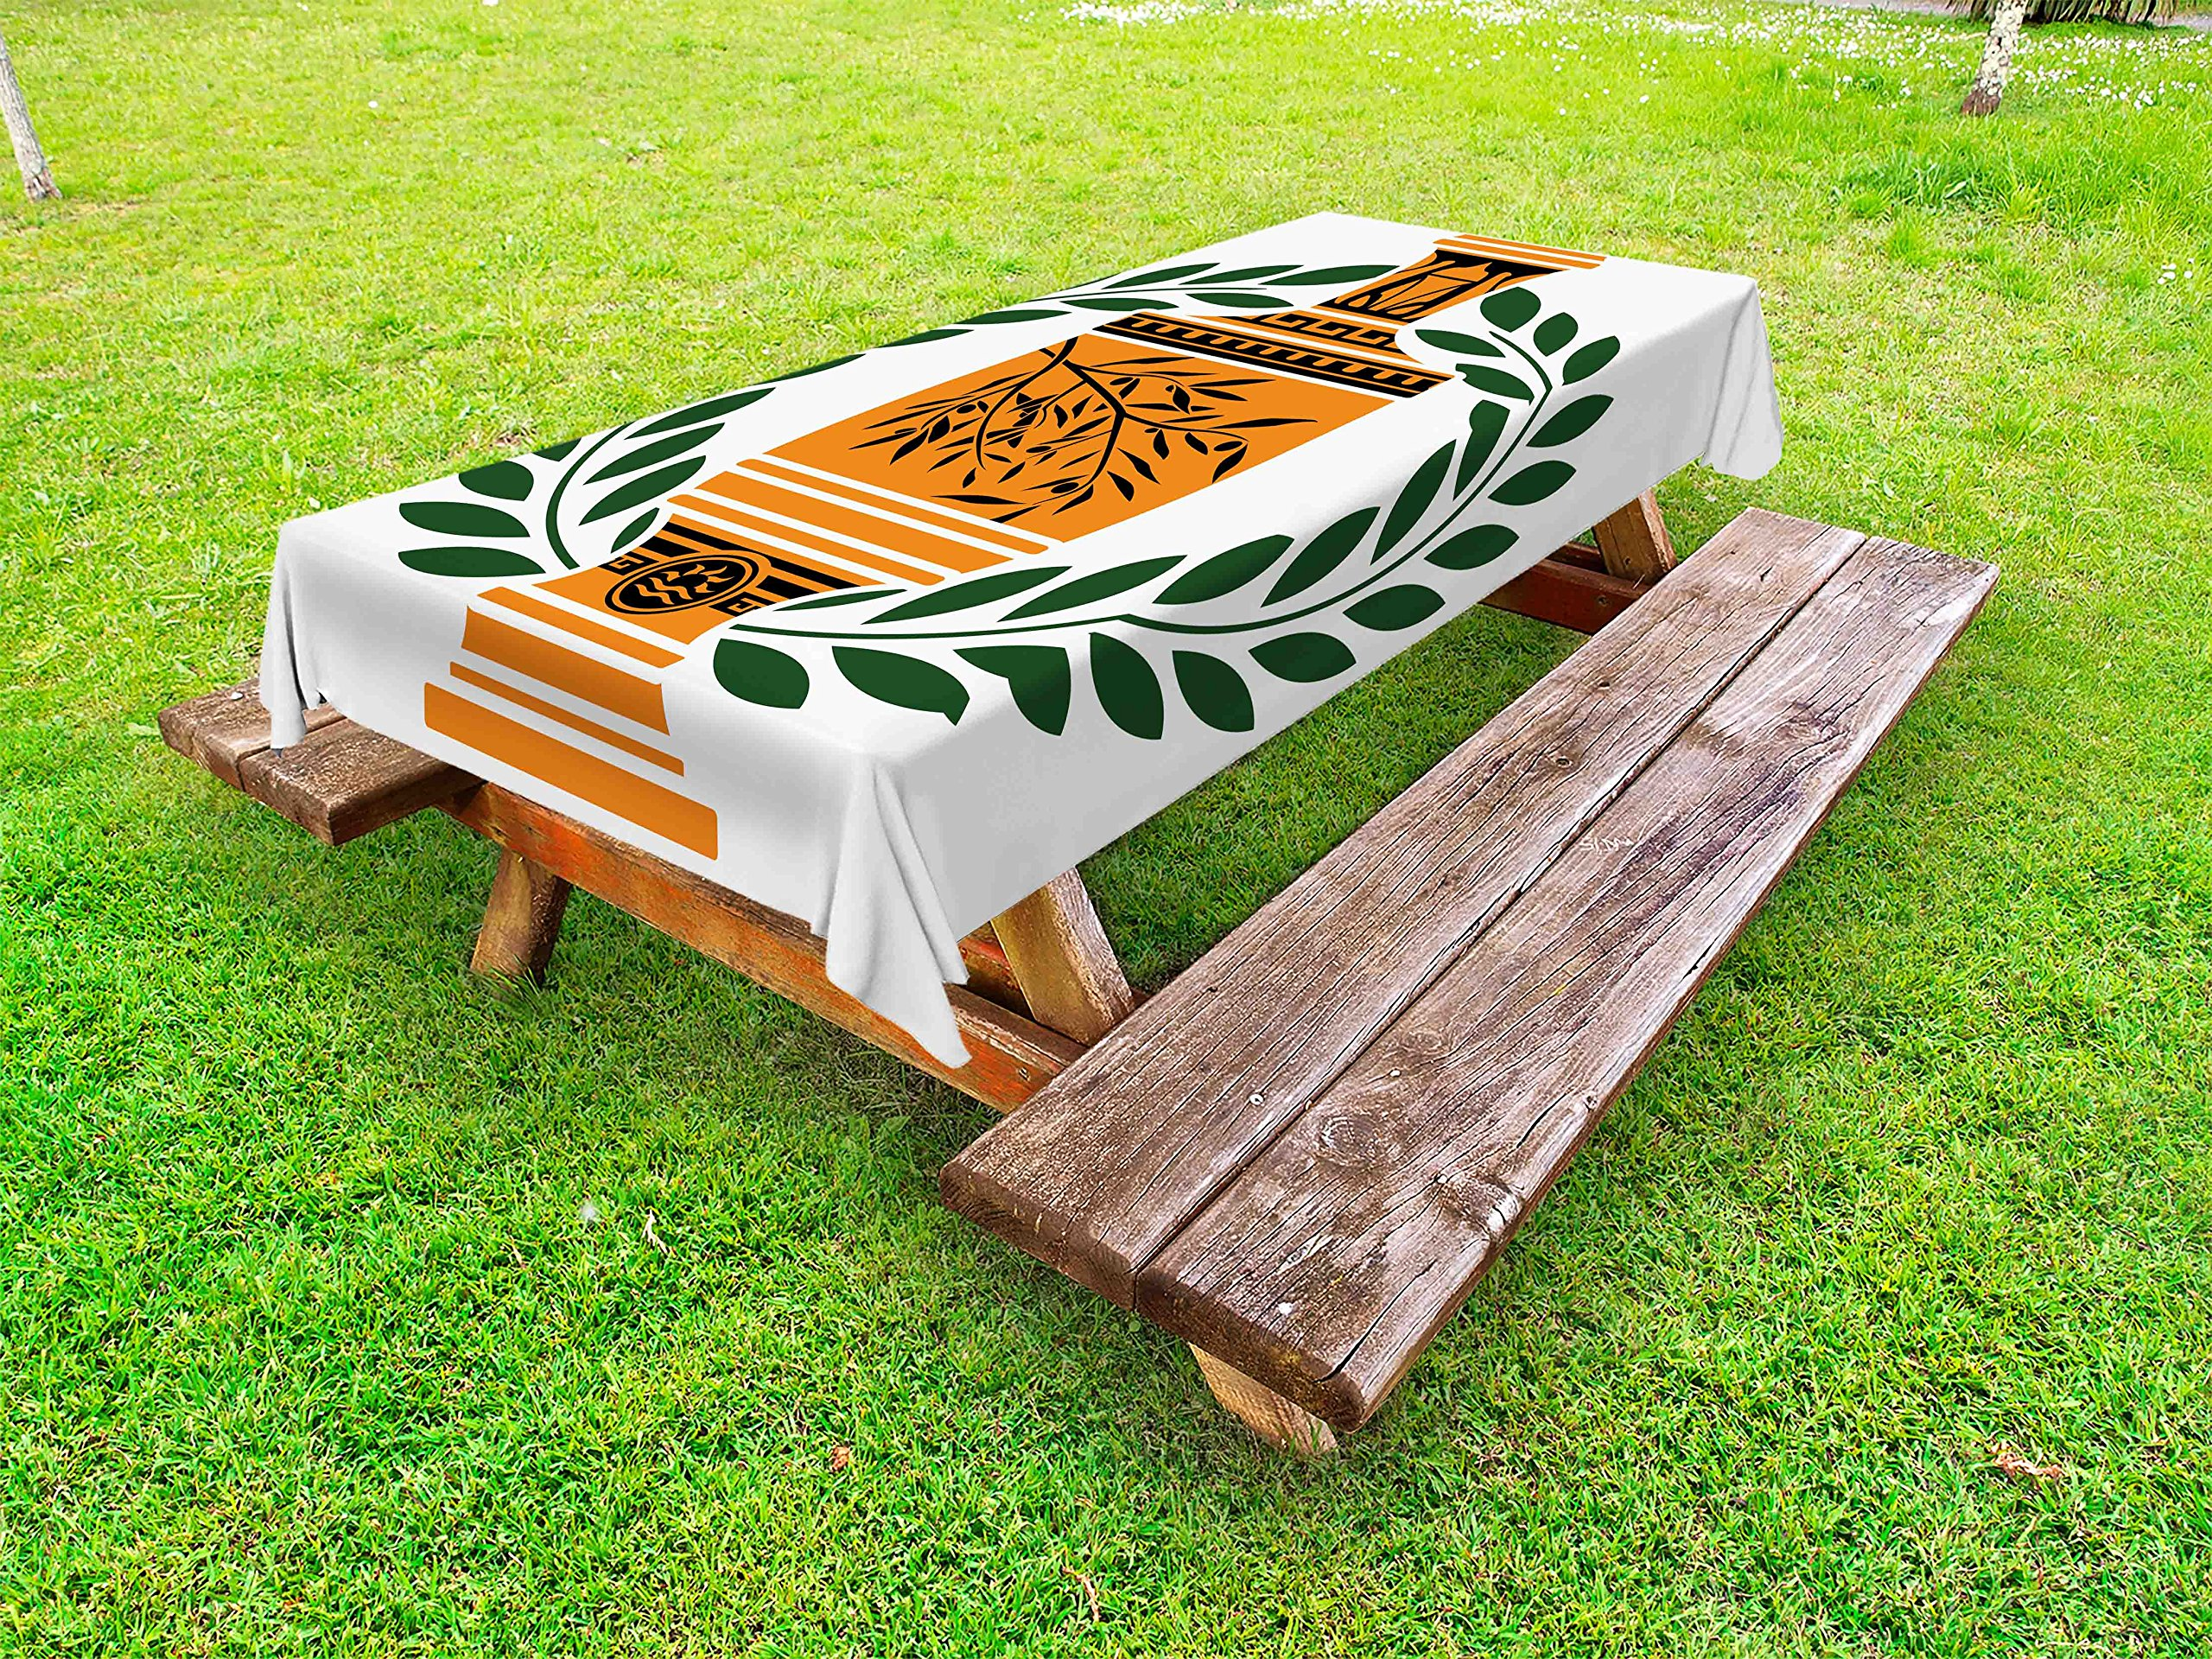 Ambesonne Toga Party Outdoor Tablecloth, Old Antique Greek Vase with Olive Branch Motif and Laurel Wreath, Decorative Washable Picnic Table Cloth, 58 X 84 inches, Hunter Green Orange Black